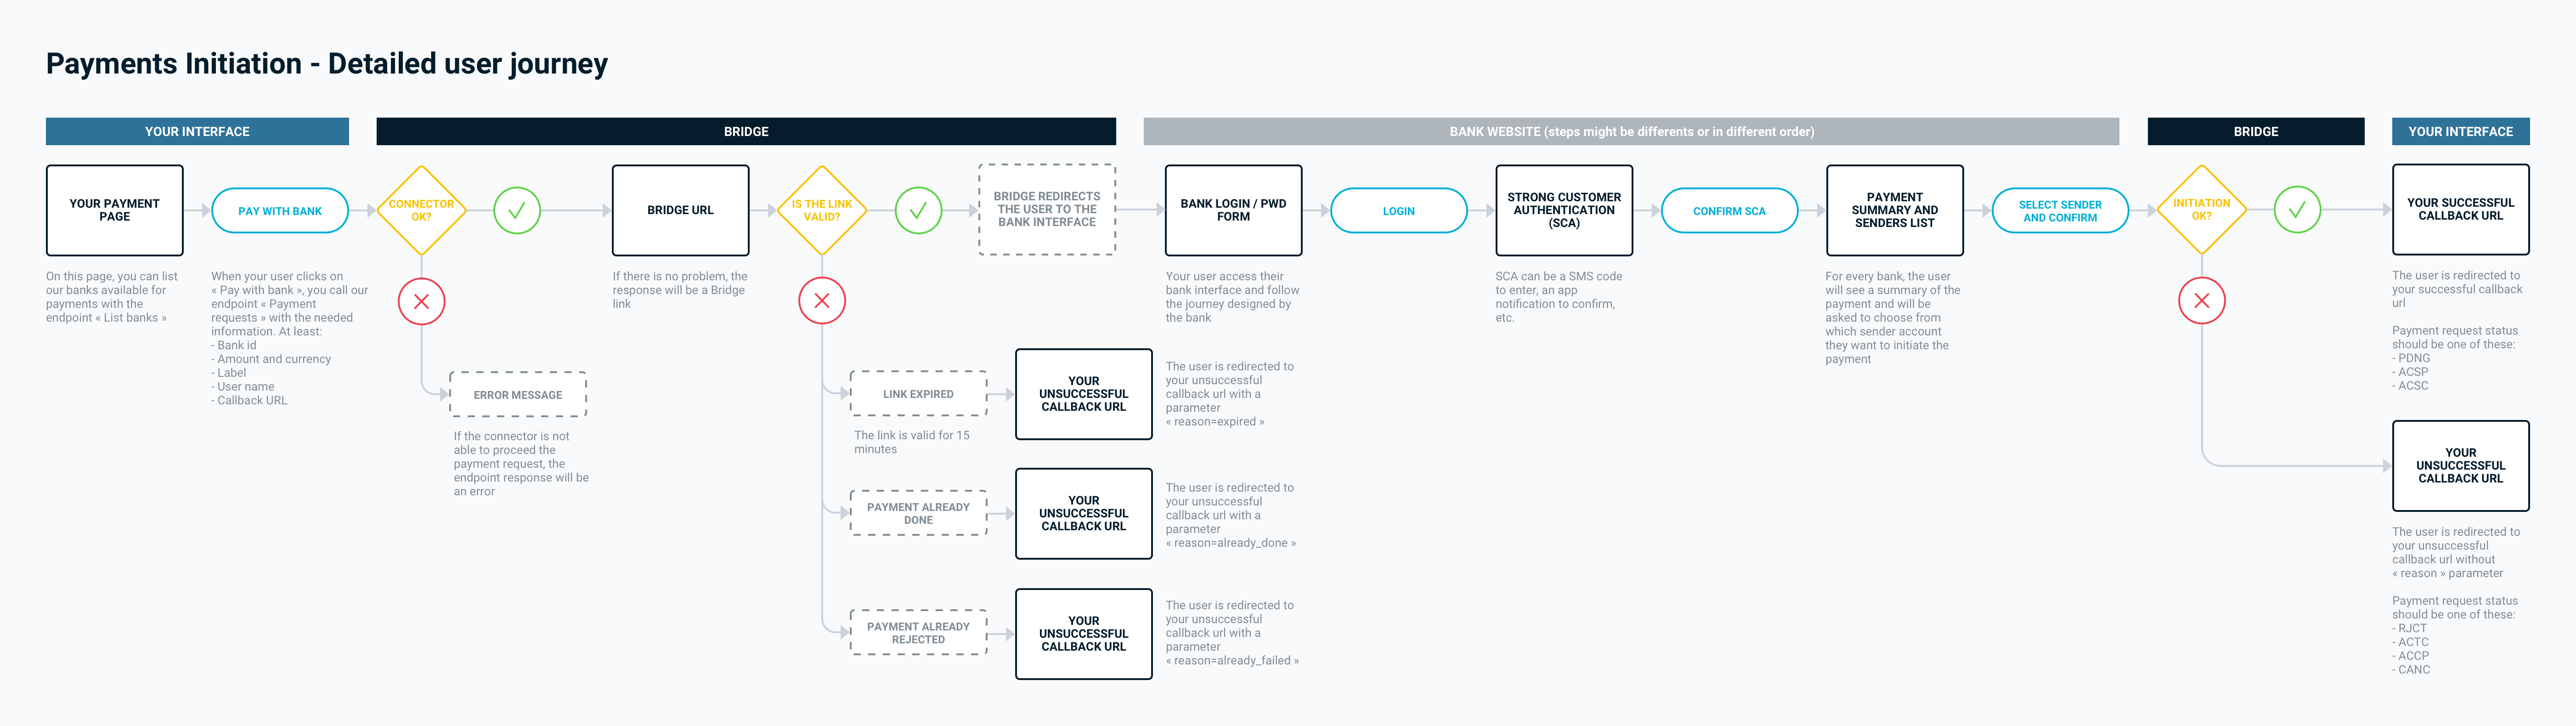 Detailed payment initiation user journey